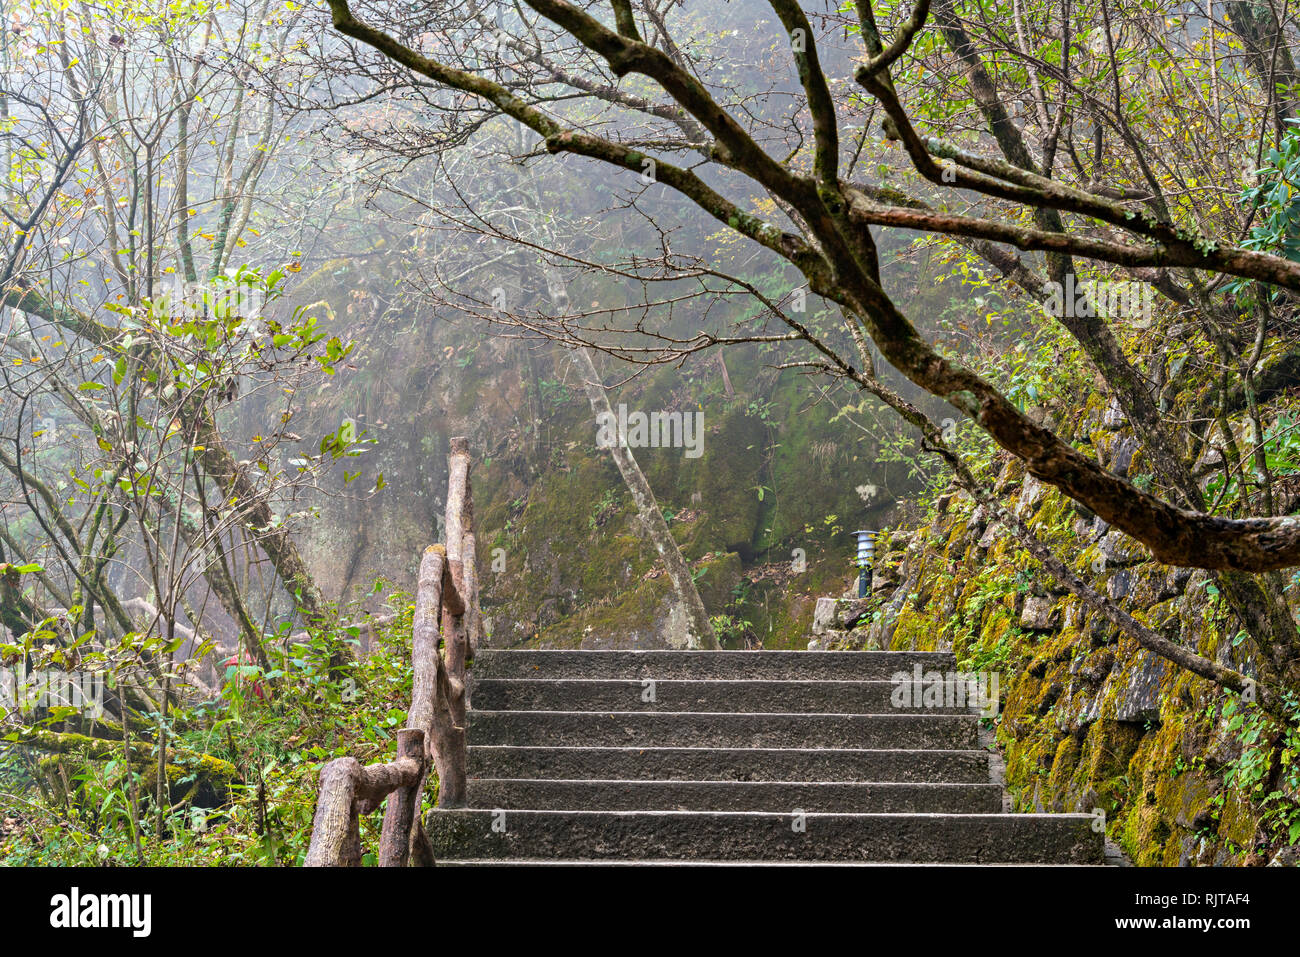 Stairway In The Forest - Stock Image